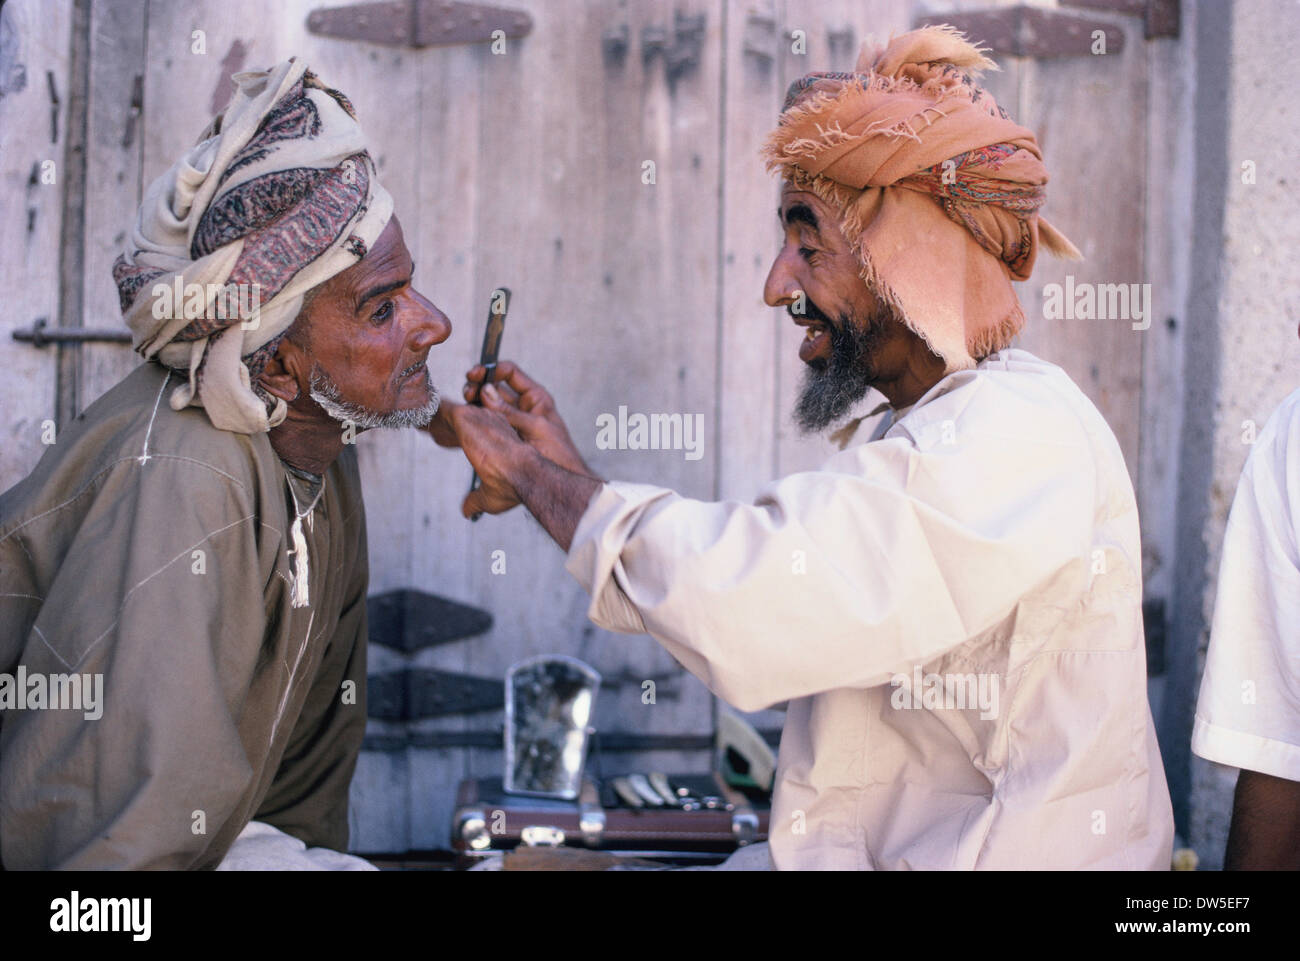 Omani barber and client, Muscat, 1969. Omani traditional culture and dress. - Stock Image